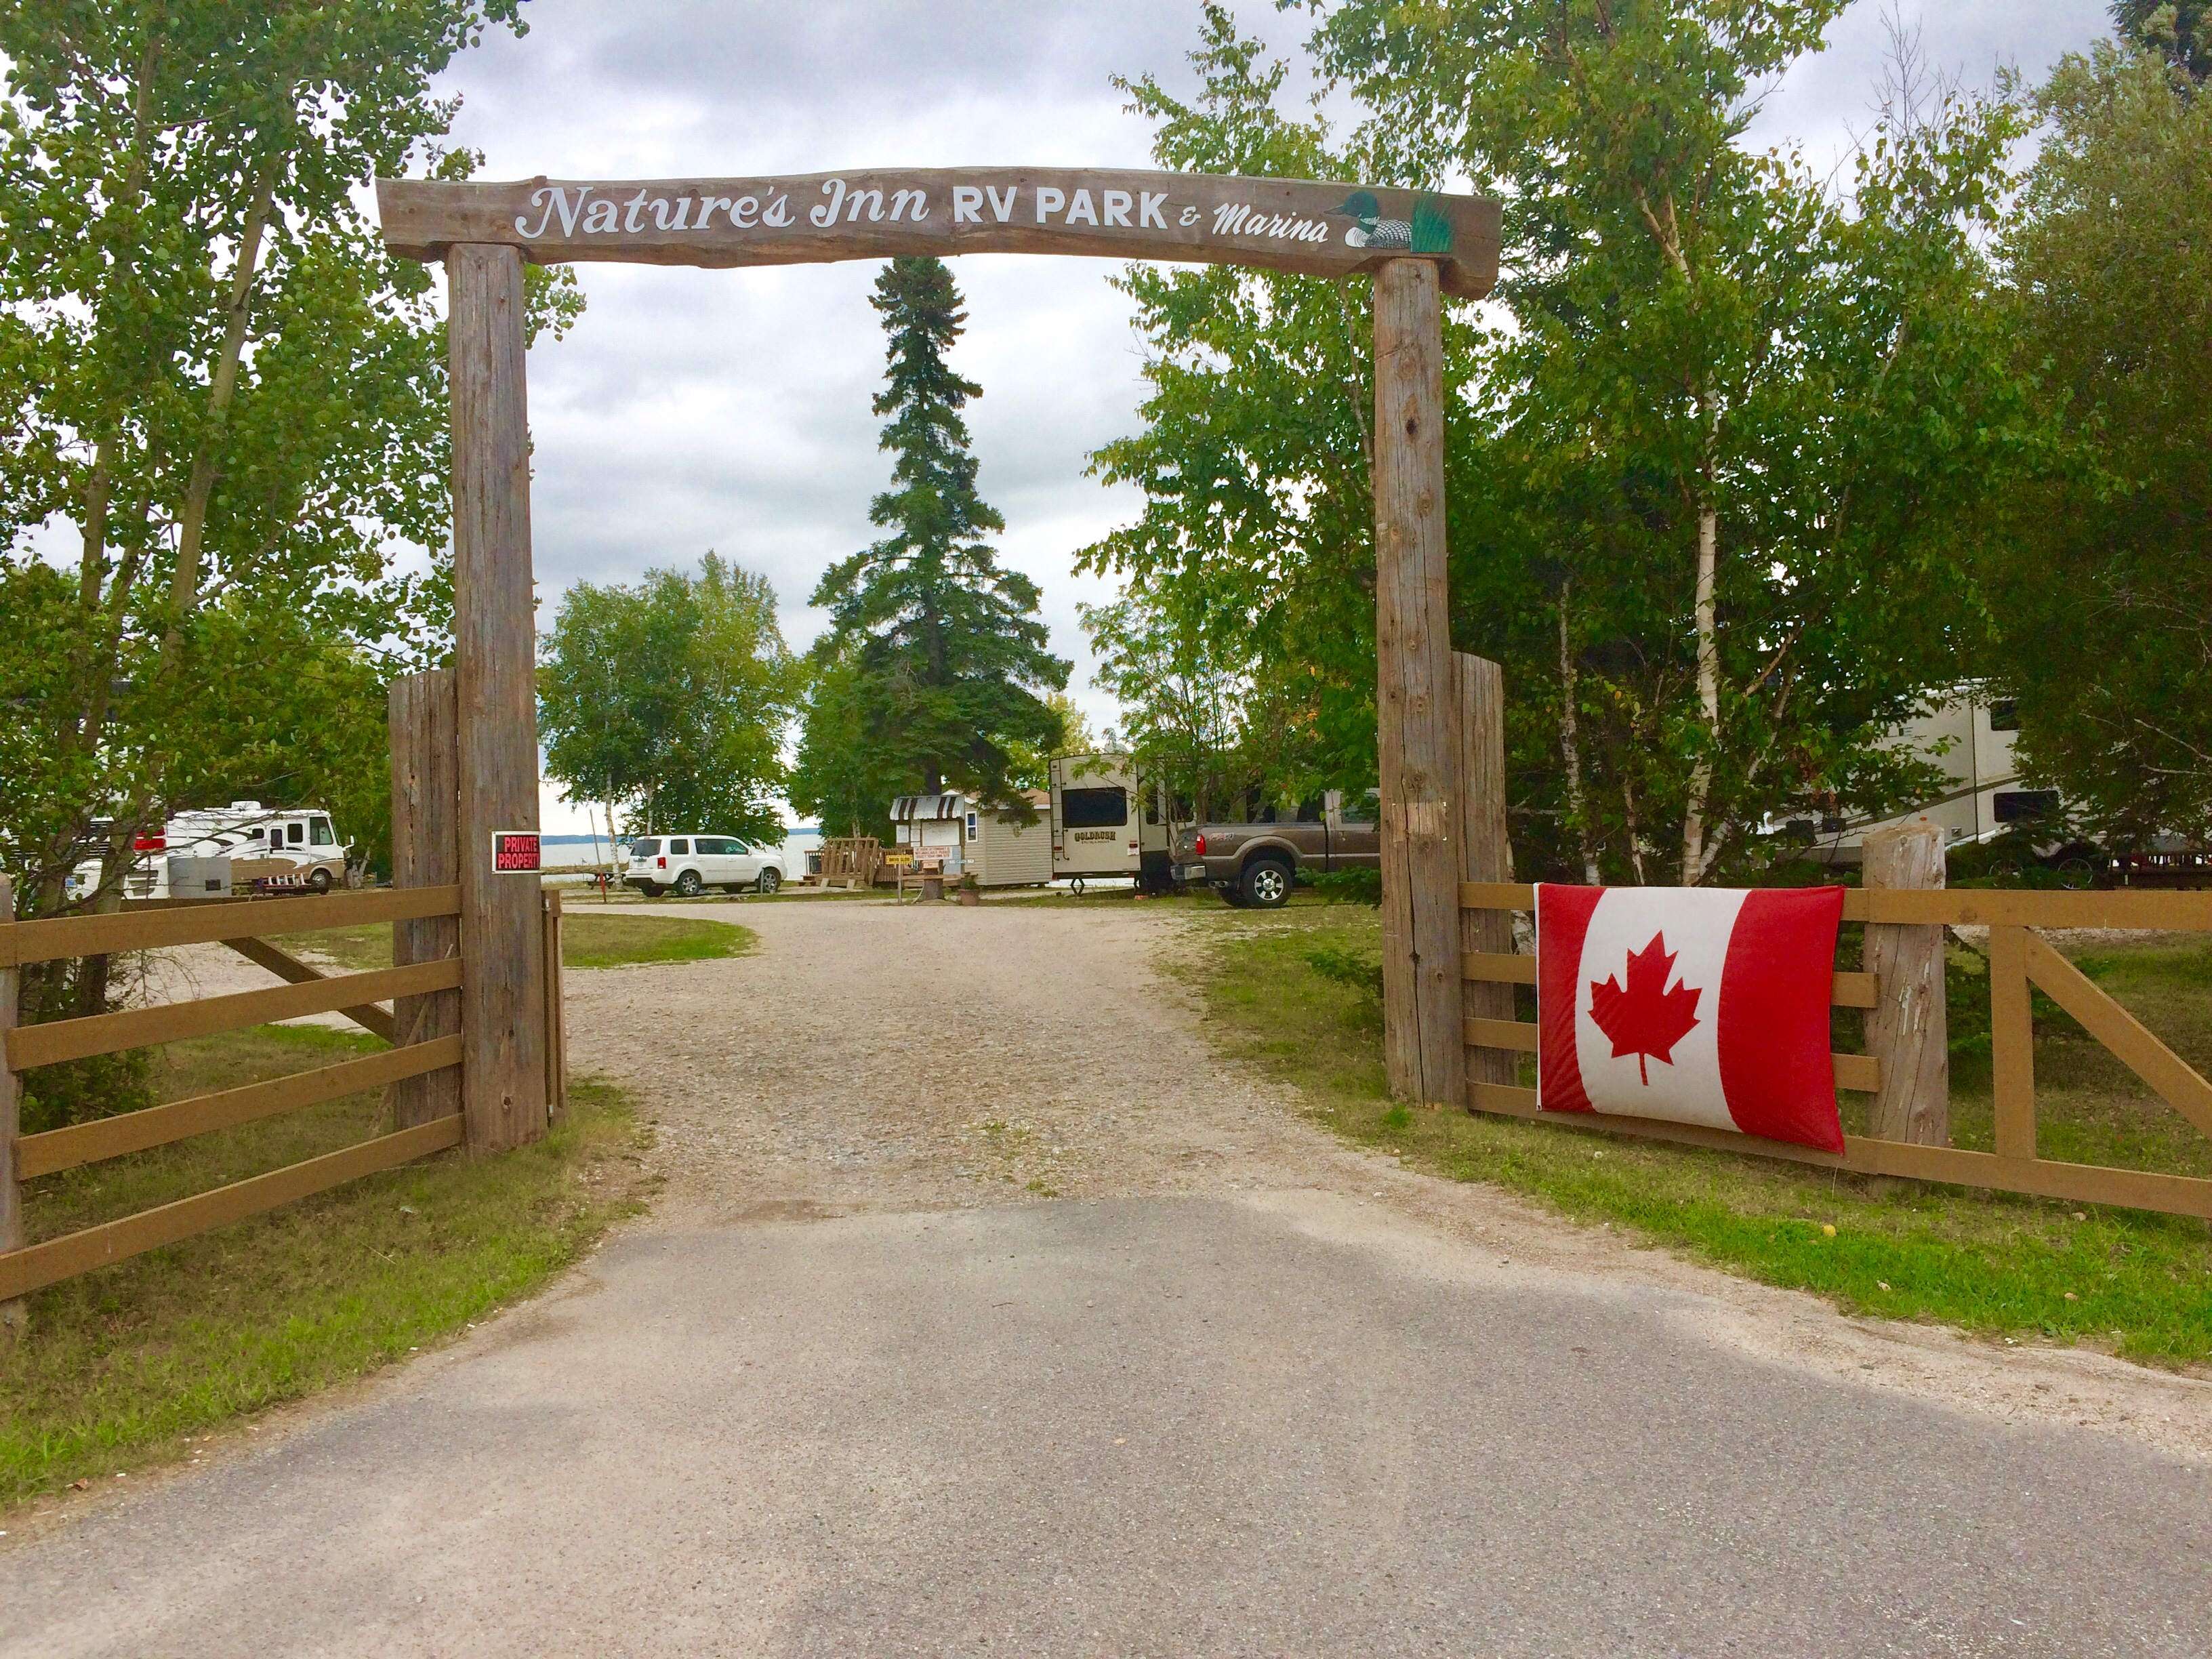 rv park dryden natures inn entrance